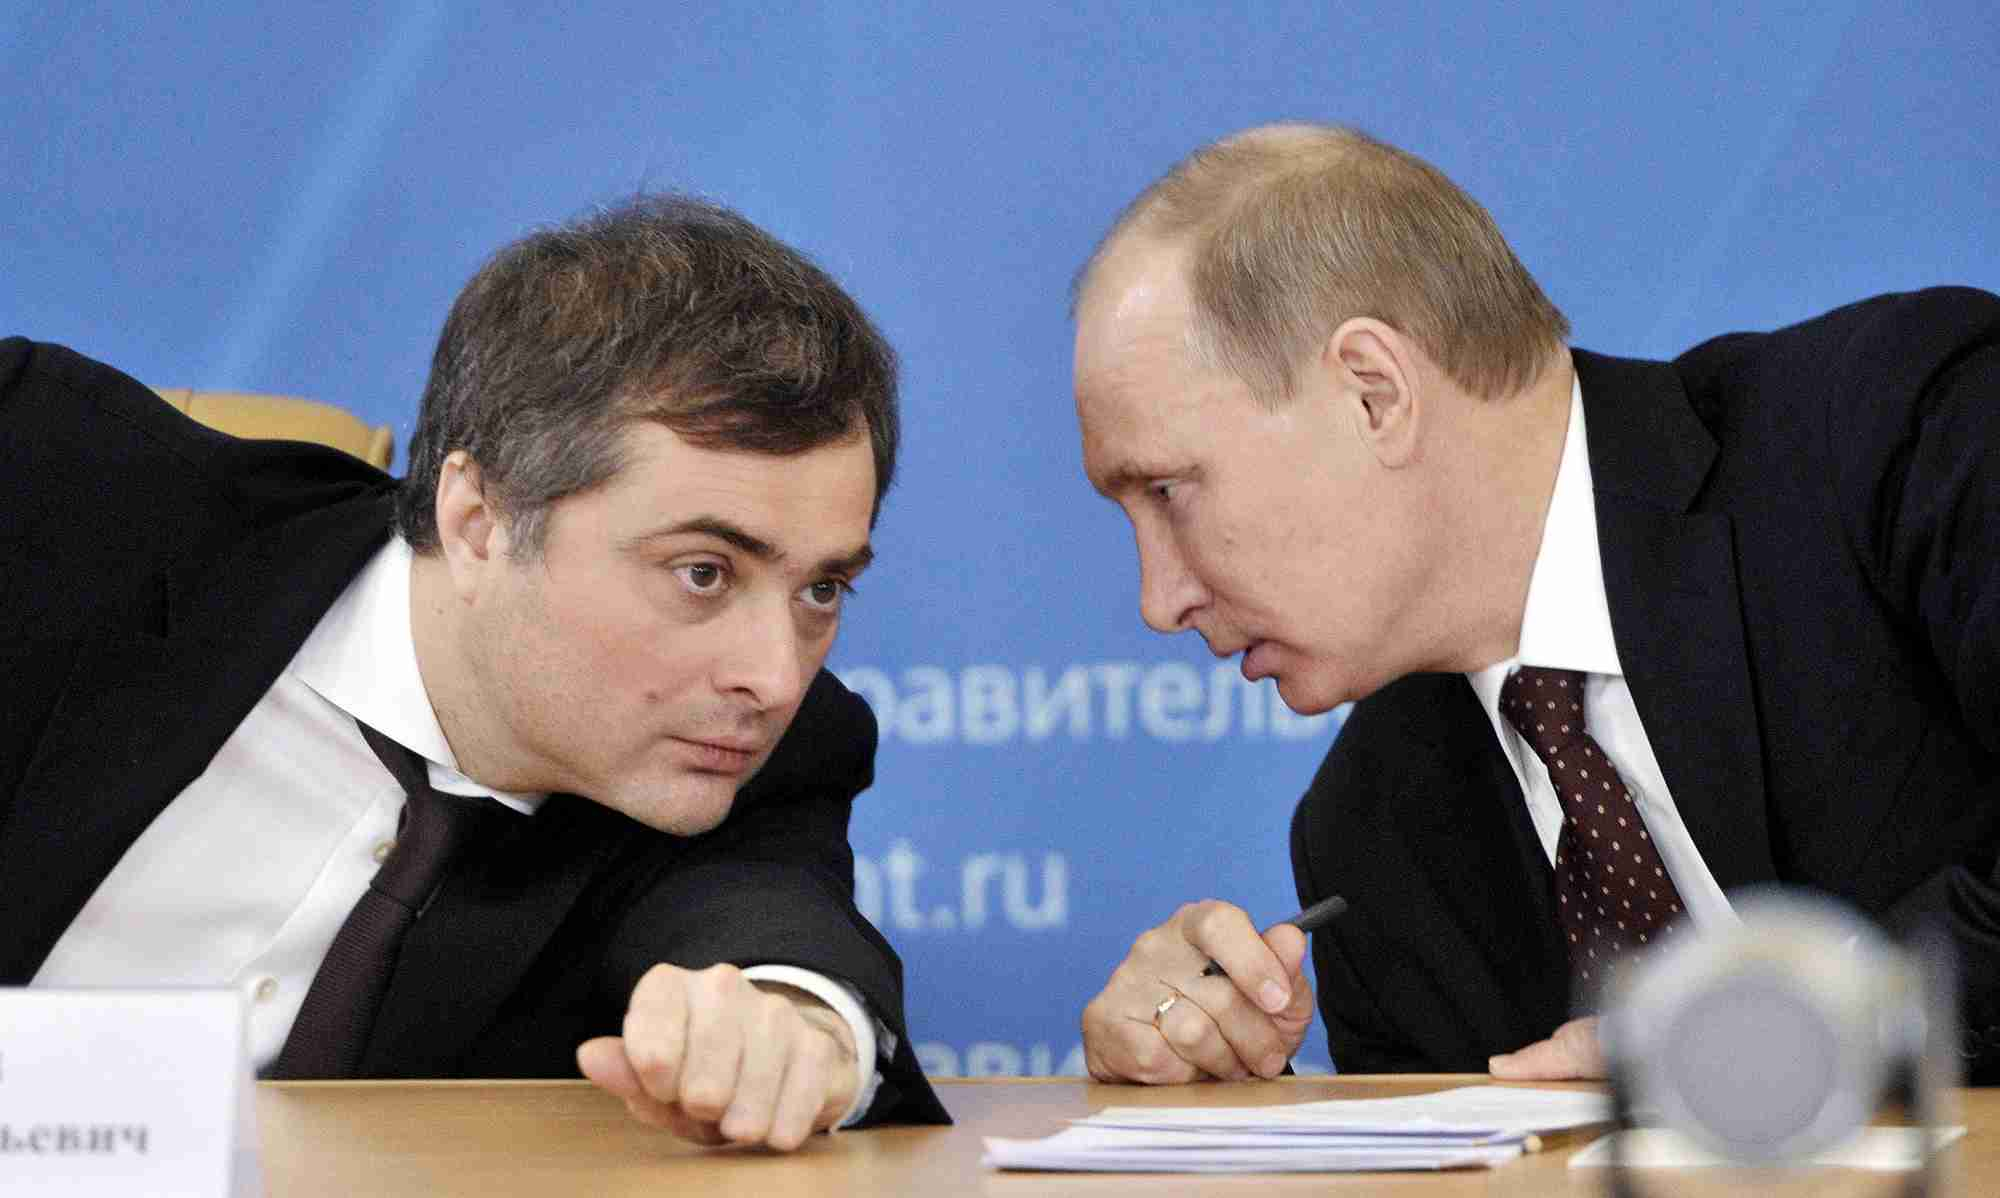 Russian Prime Minister Vladimir Putin (R) talks with Deputy Prime Minister Vladislav Surkov as they attend a meeting on the modernization of regional systems of higher education in the Russian Siberian city of Kurgan in this February 13, 2012 file photo. Surkov, who was once President Putin's chief political strategist and dubbed the Kremlin's puppet master, resigned on May 8, 2013. REUTERS/Alexei Nikolsky/RIA Novosti/Pool/Files (RUSSIA - Tags: EDUCATION POLITICS) THIS IMAGE HAS BEEN SUPPLIED BY A THIRD PARTY. IT IS DISTRIBUTED, EXACTLY AS RECEIVED BY REUTERS, AS A SERVICE TO CLIENTS. FOR EDITORIAL USE ONLY. NOT FOR SALE FOR MARKETING OR ADVERTISING CAMPAIGNS